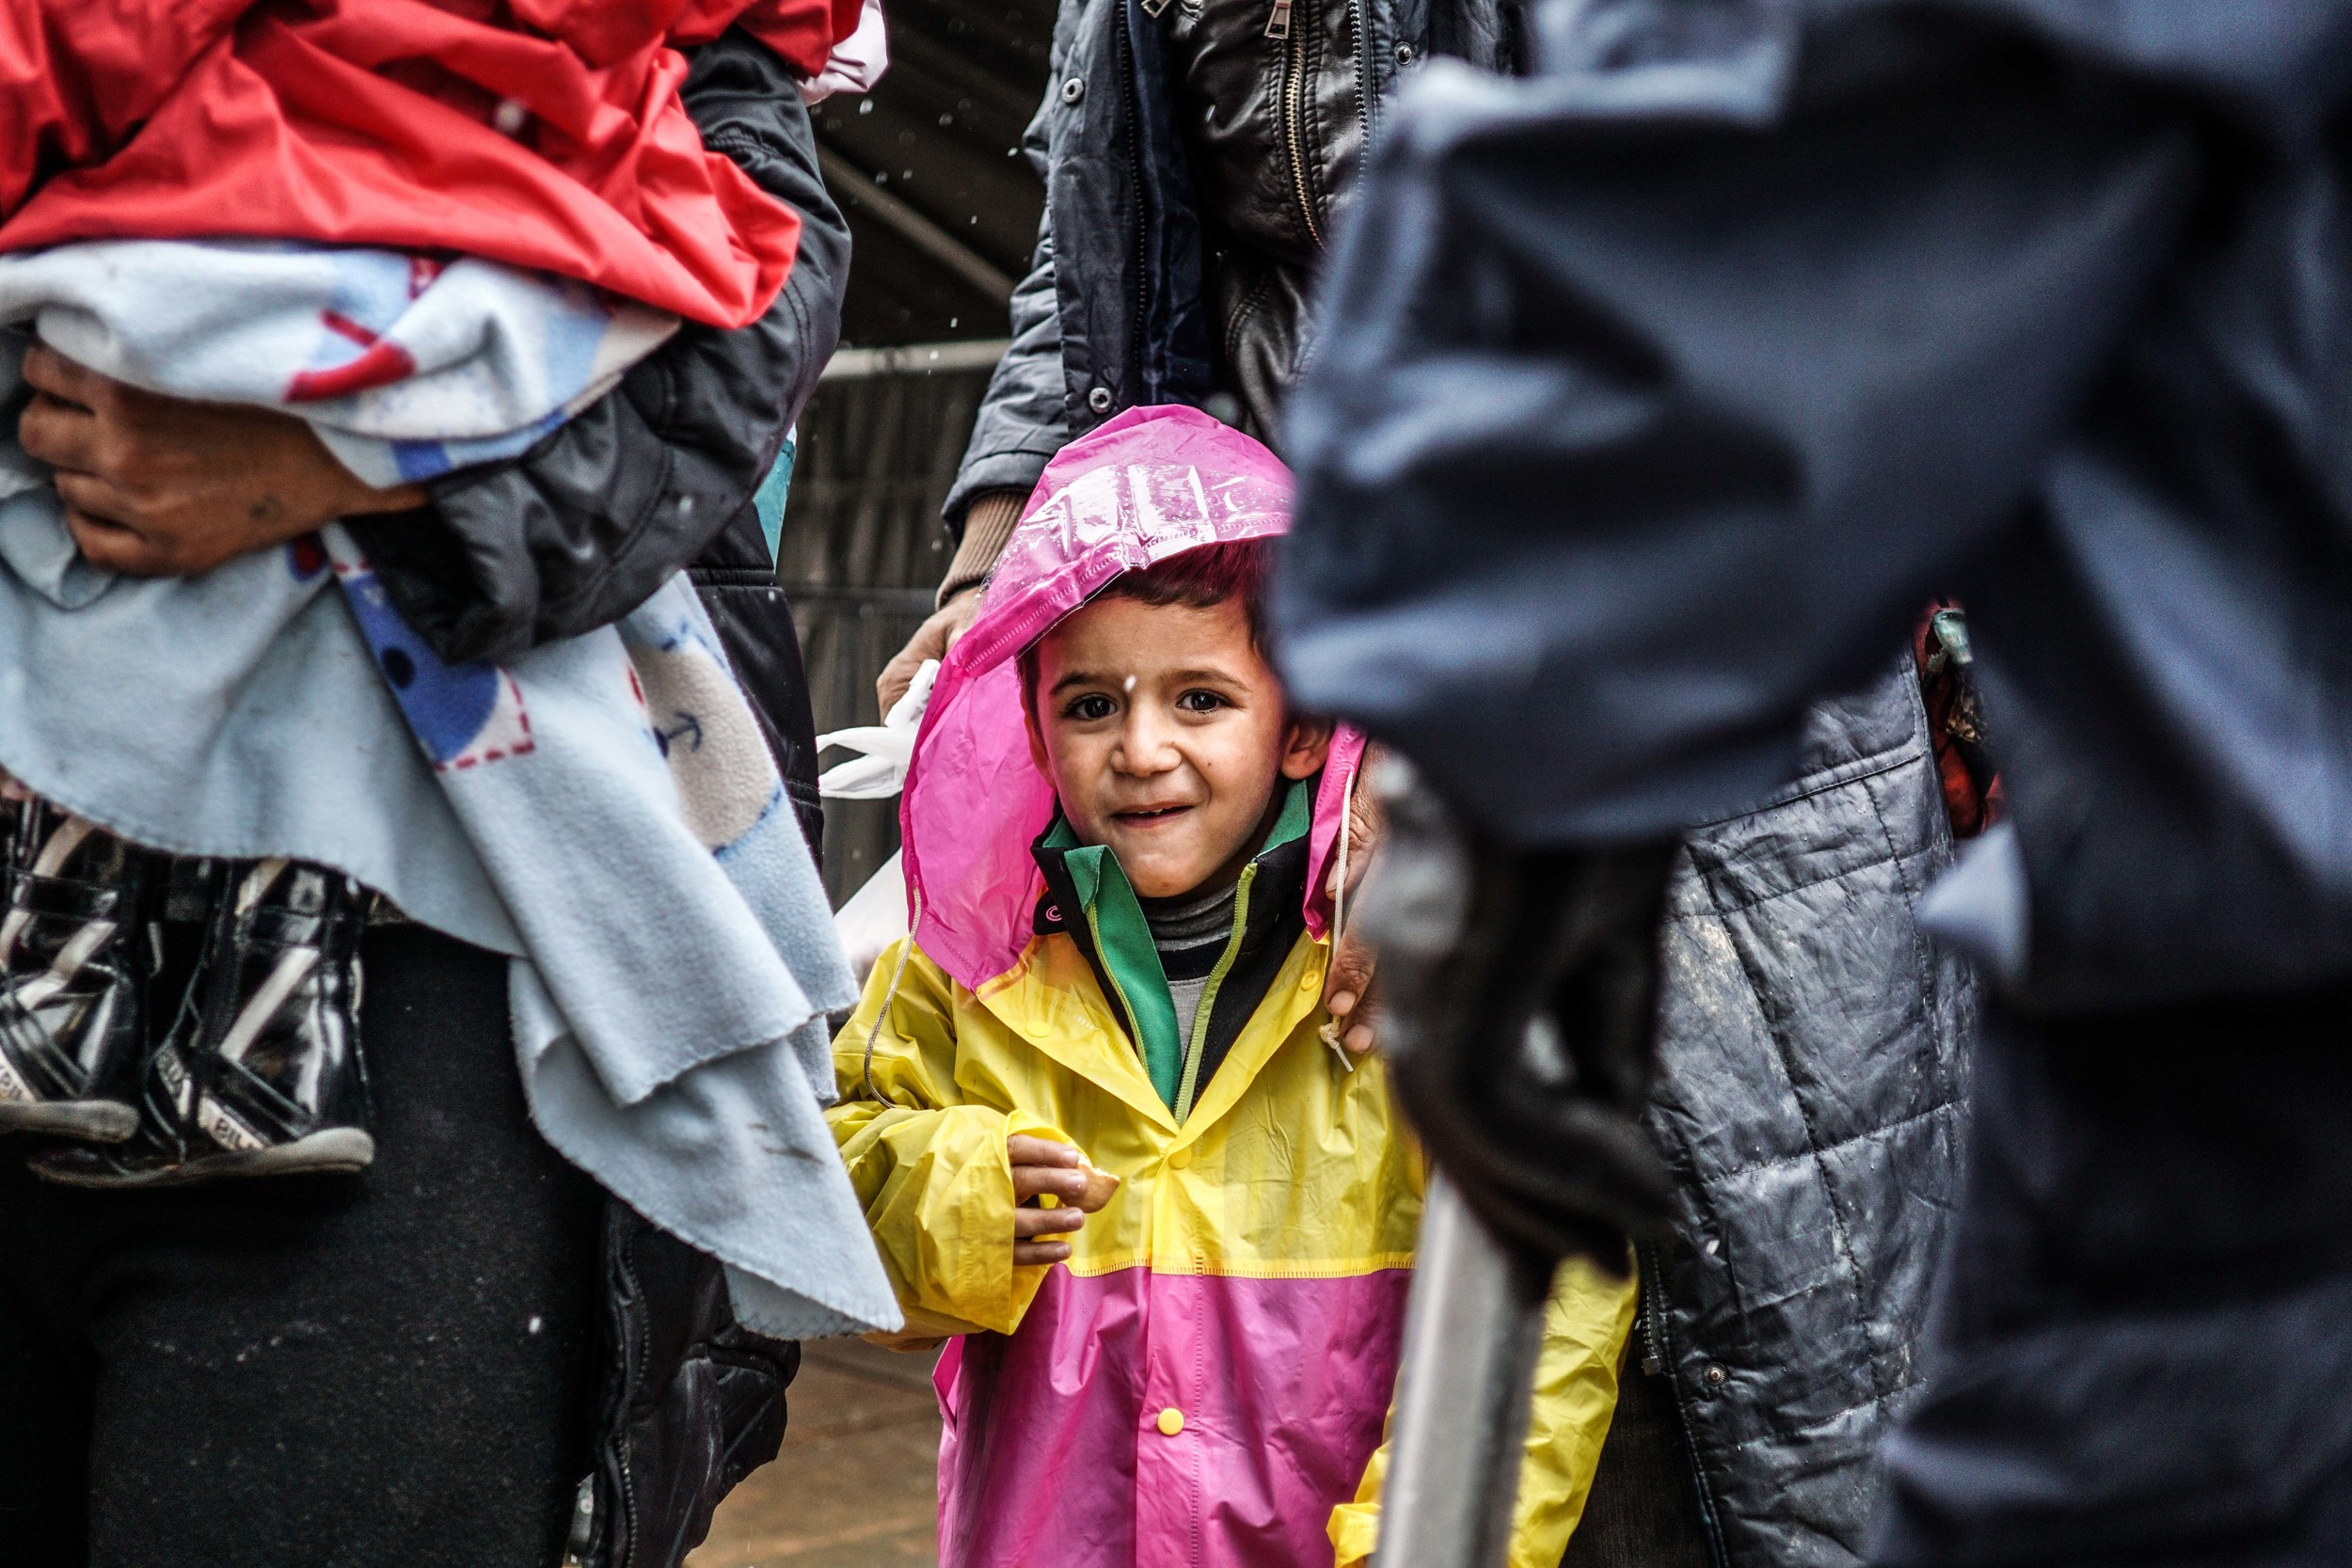 Syrian Refugee Crisis Croatia Slavonski Brod Winter Refugee Camp November 2015 18.jpg